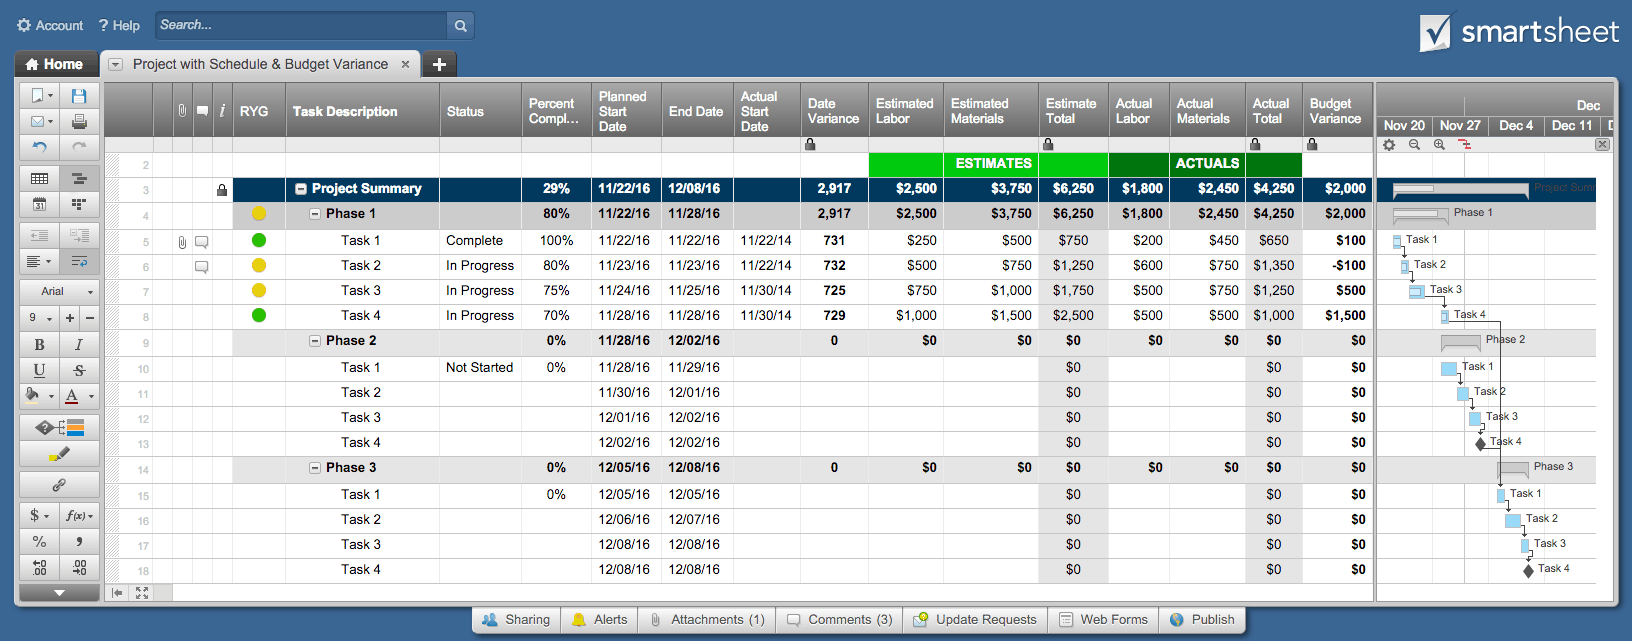 Project Budgeting Template Smartsheet  Project Status Report Excel